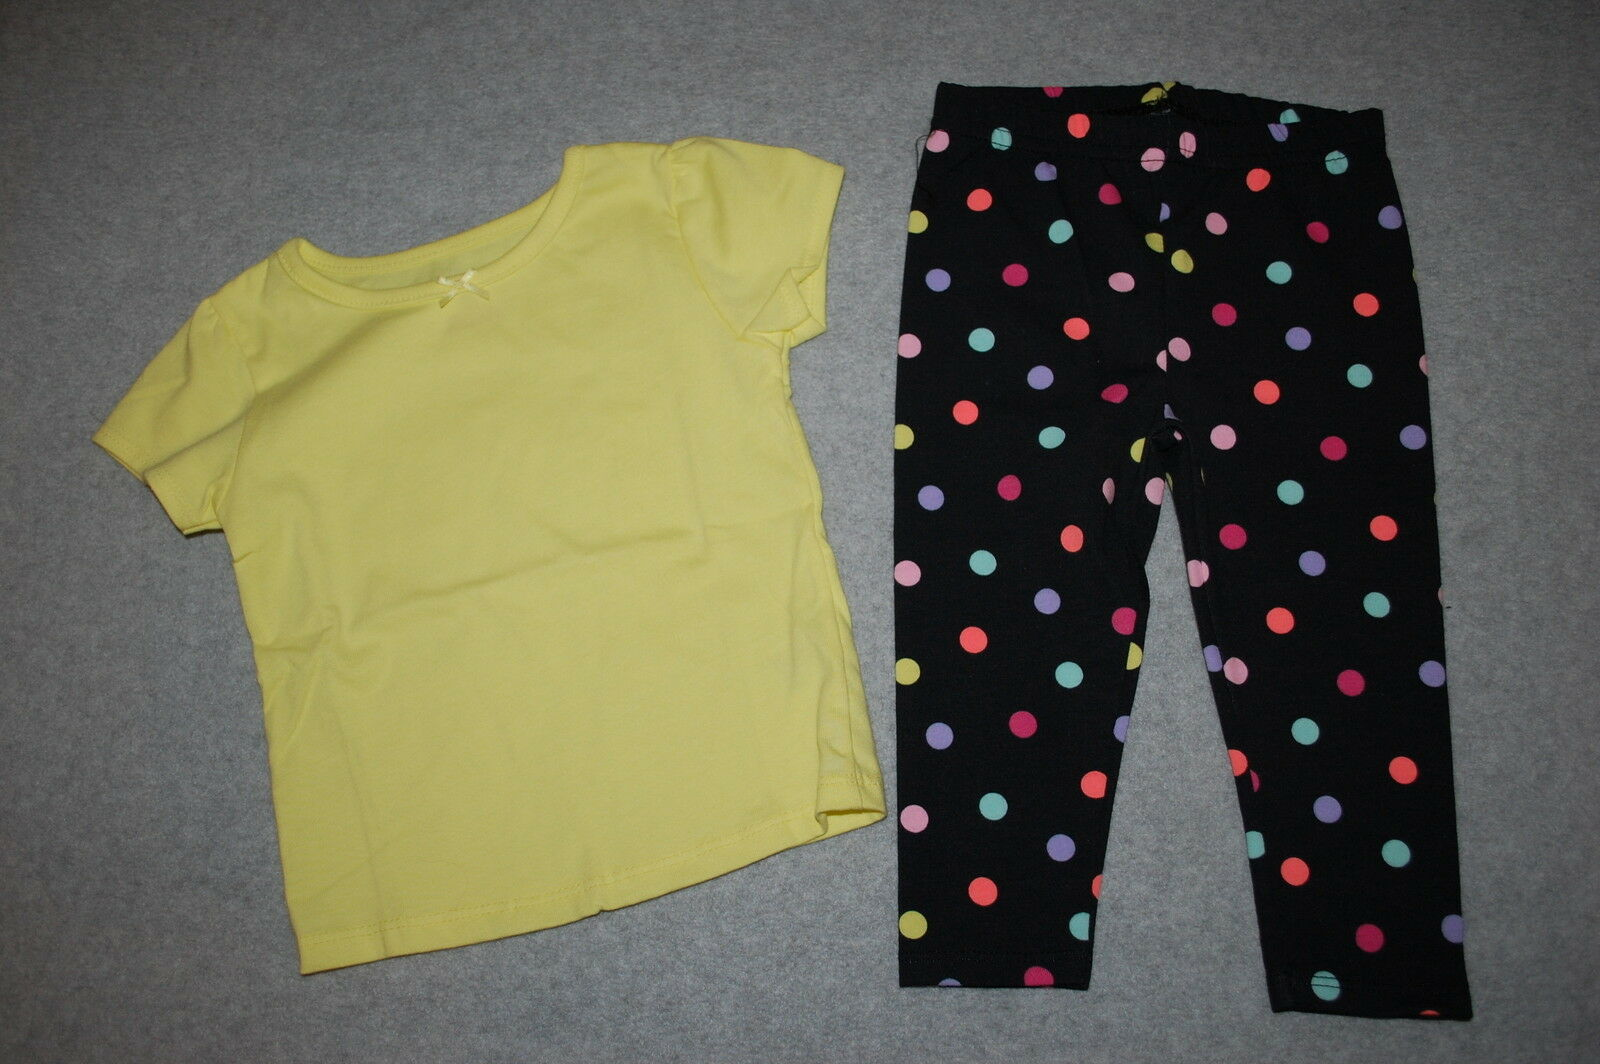 Baby Girls Outfit S S Yellow Tee Shirt Black Leggings Polka Dots Pink Aqua 12 Mo For Sale Online